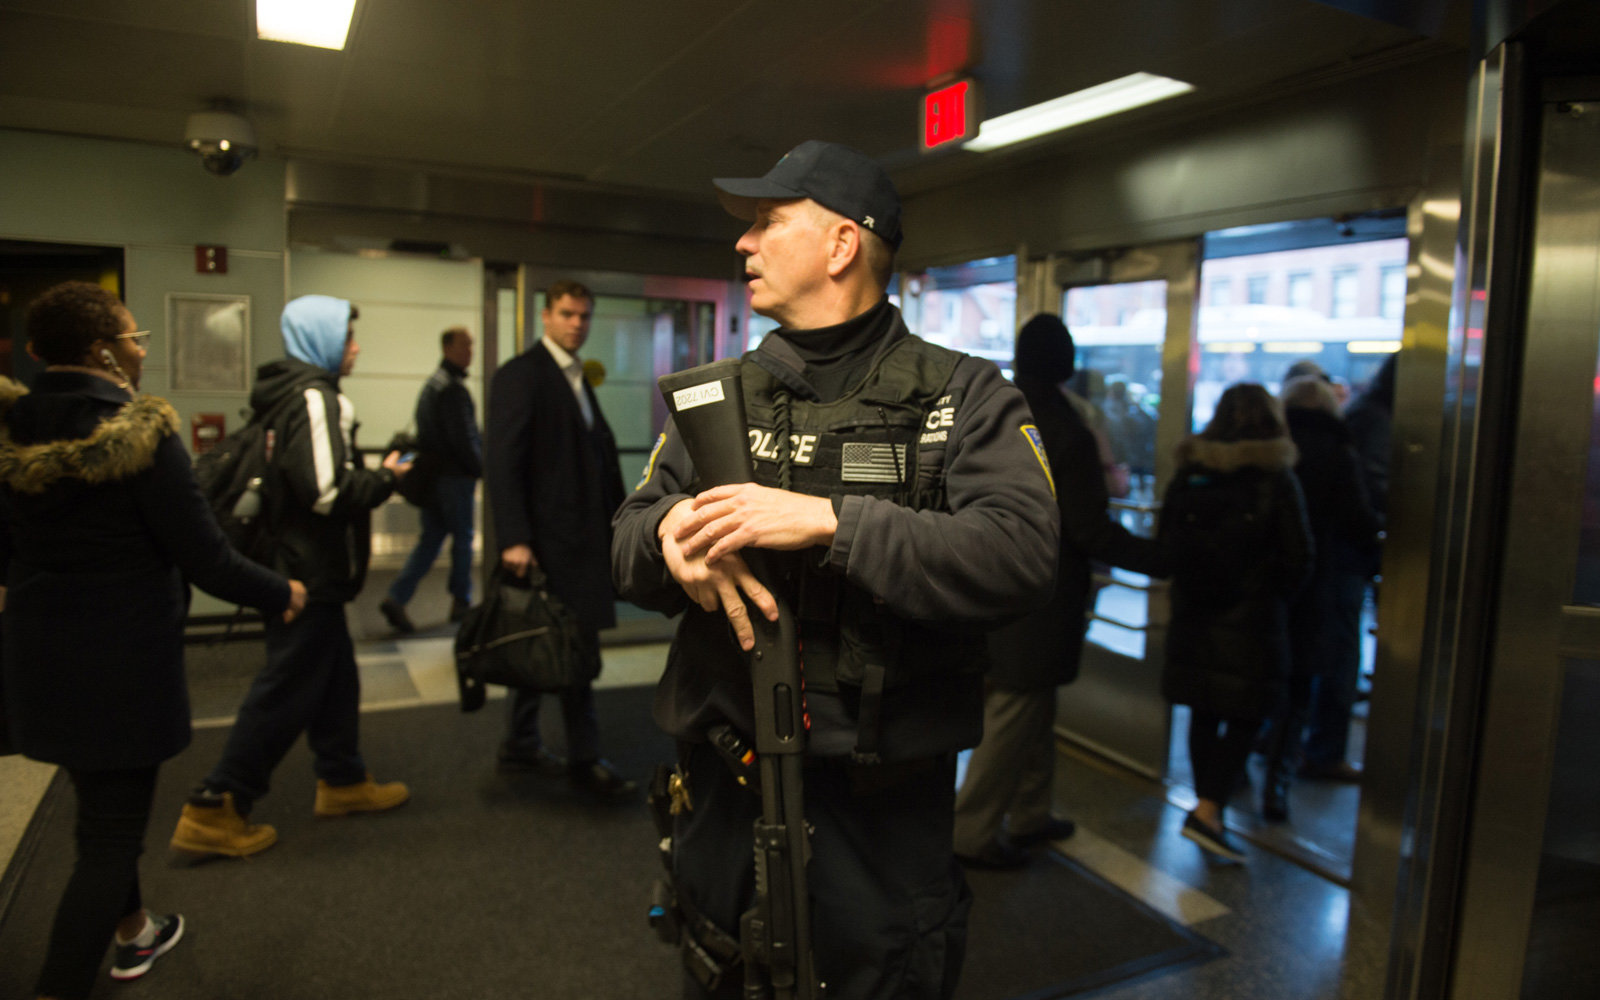 'Attempted terror attack' at NY subway